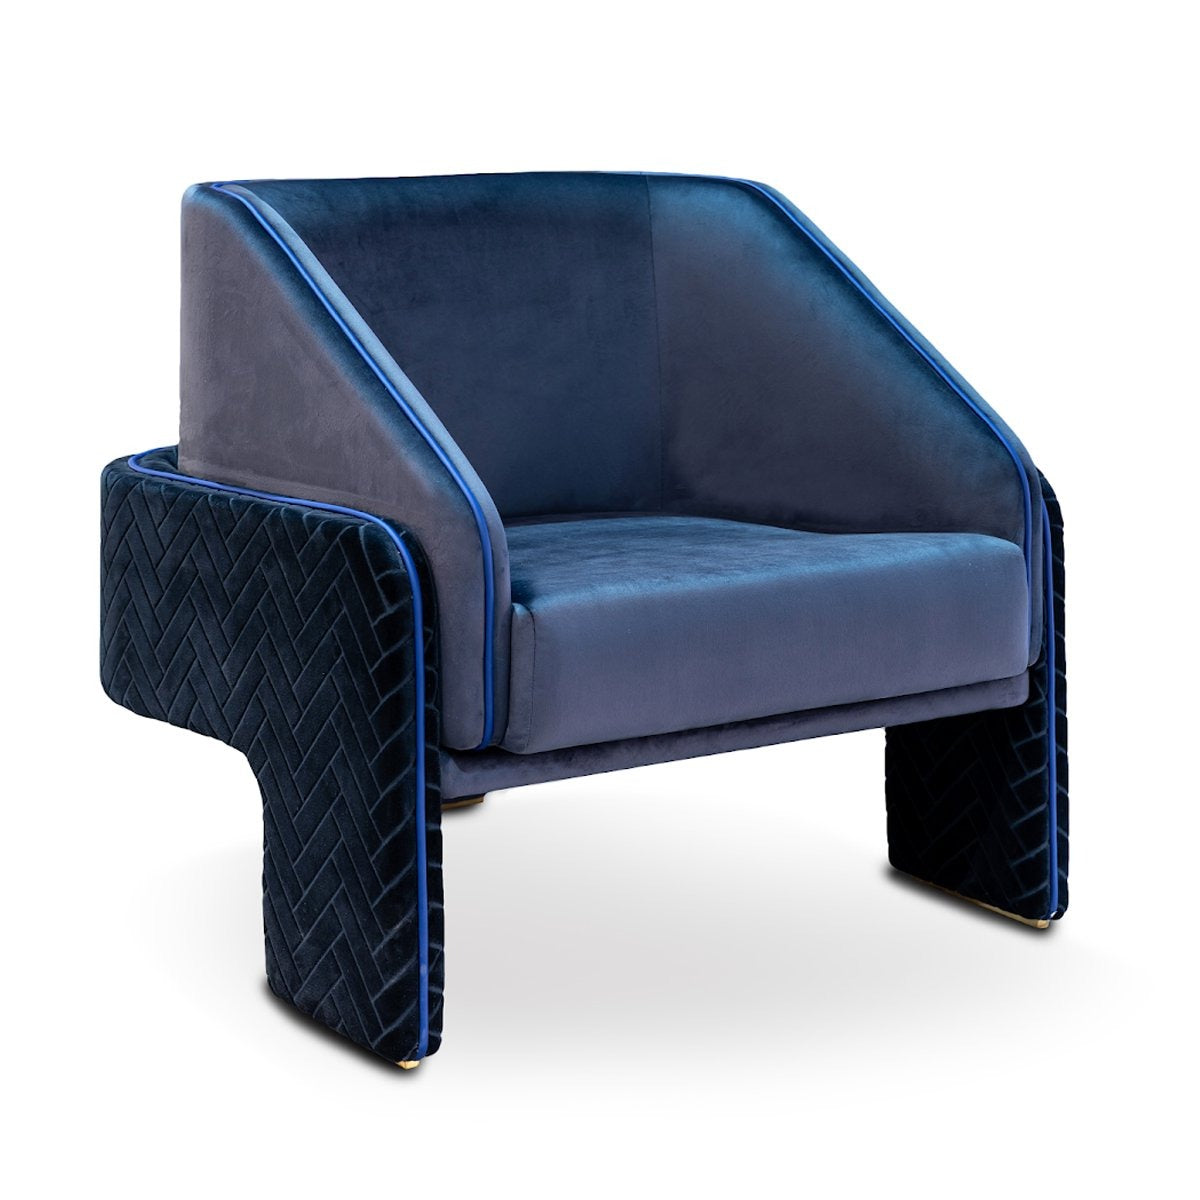 L'Unité Armchair by Dooq | Do Shop